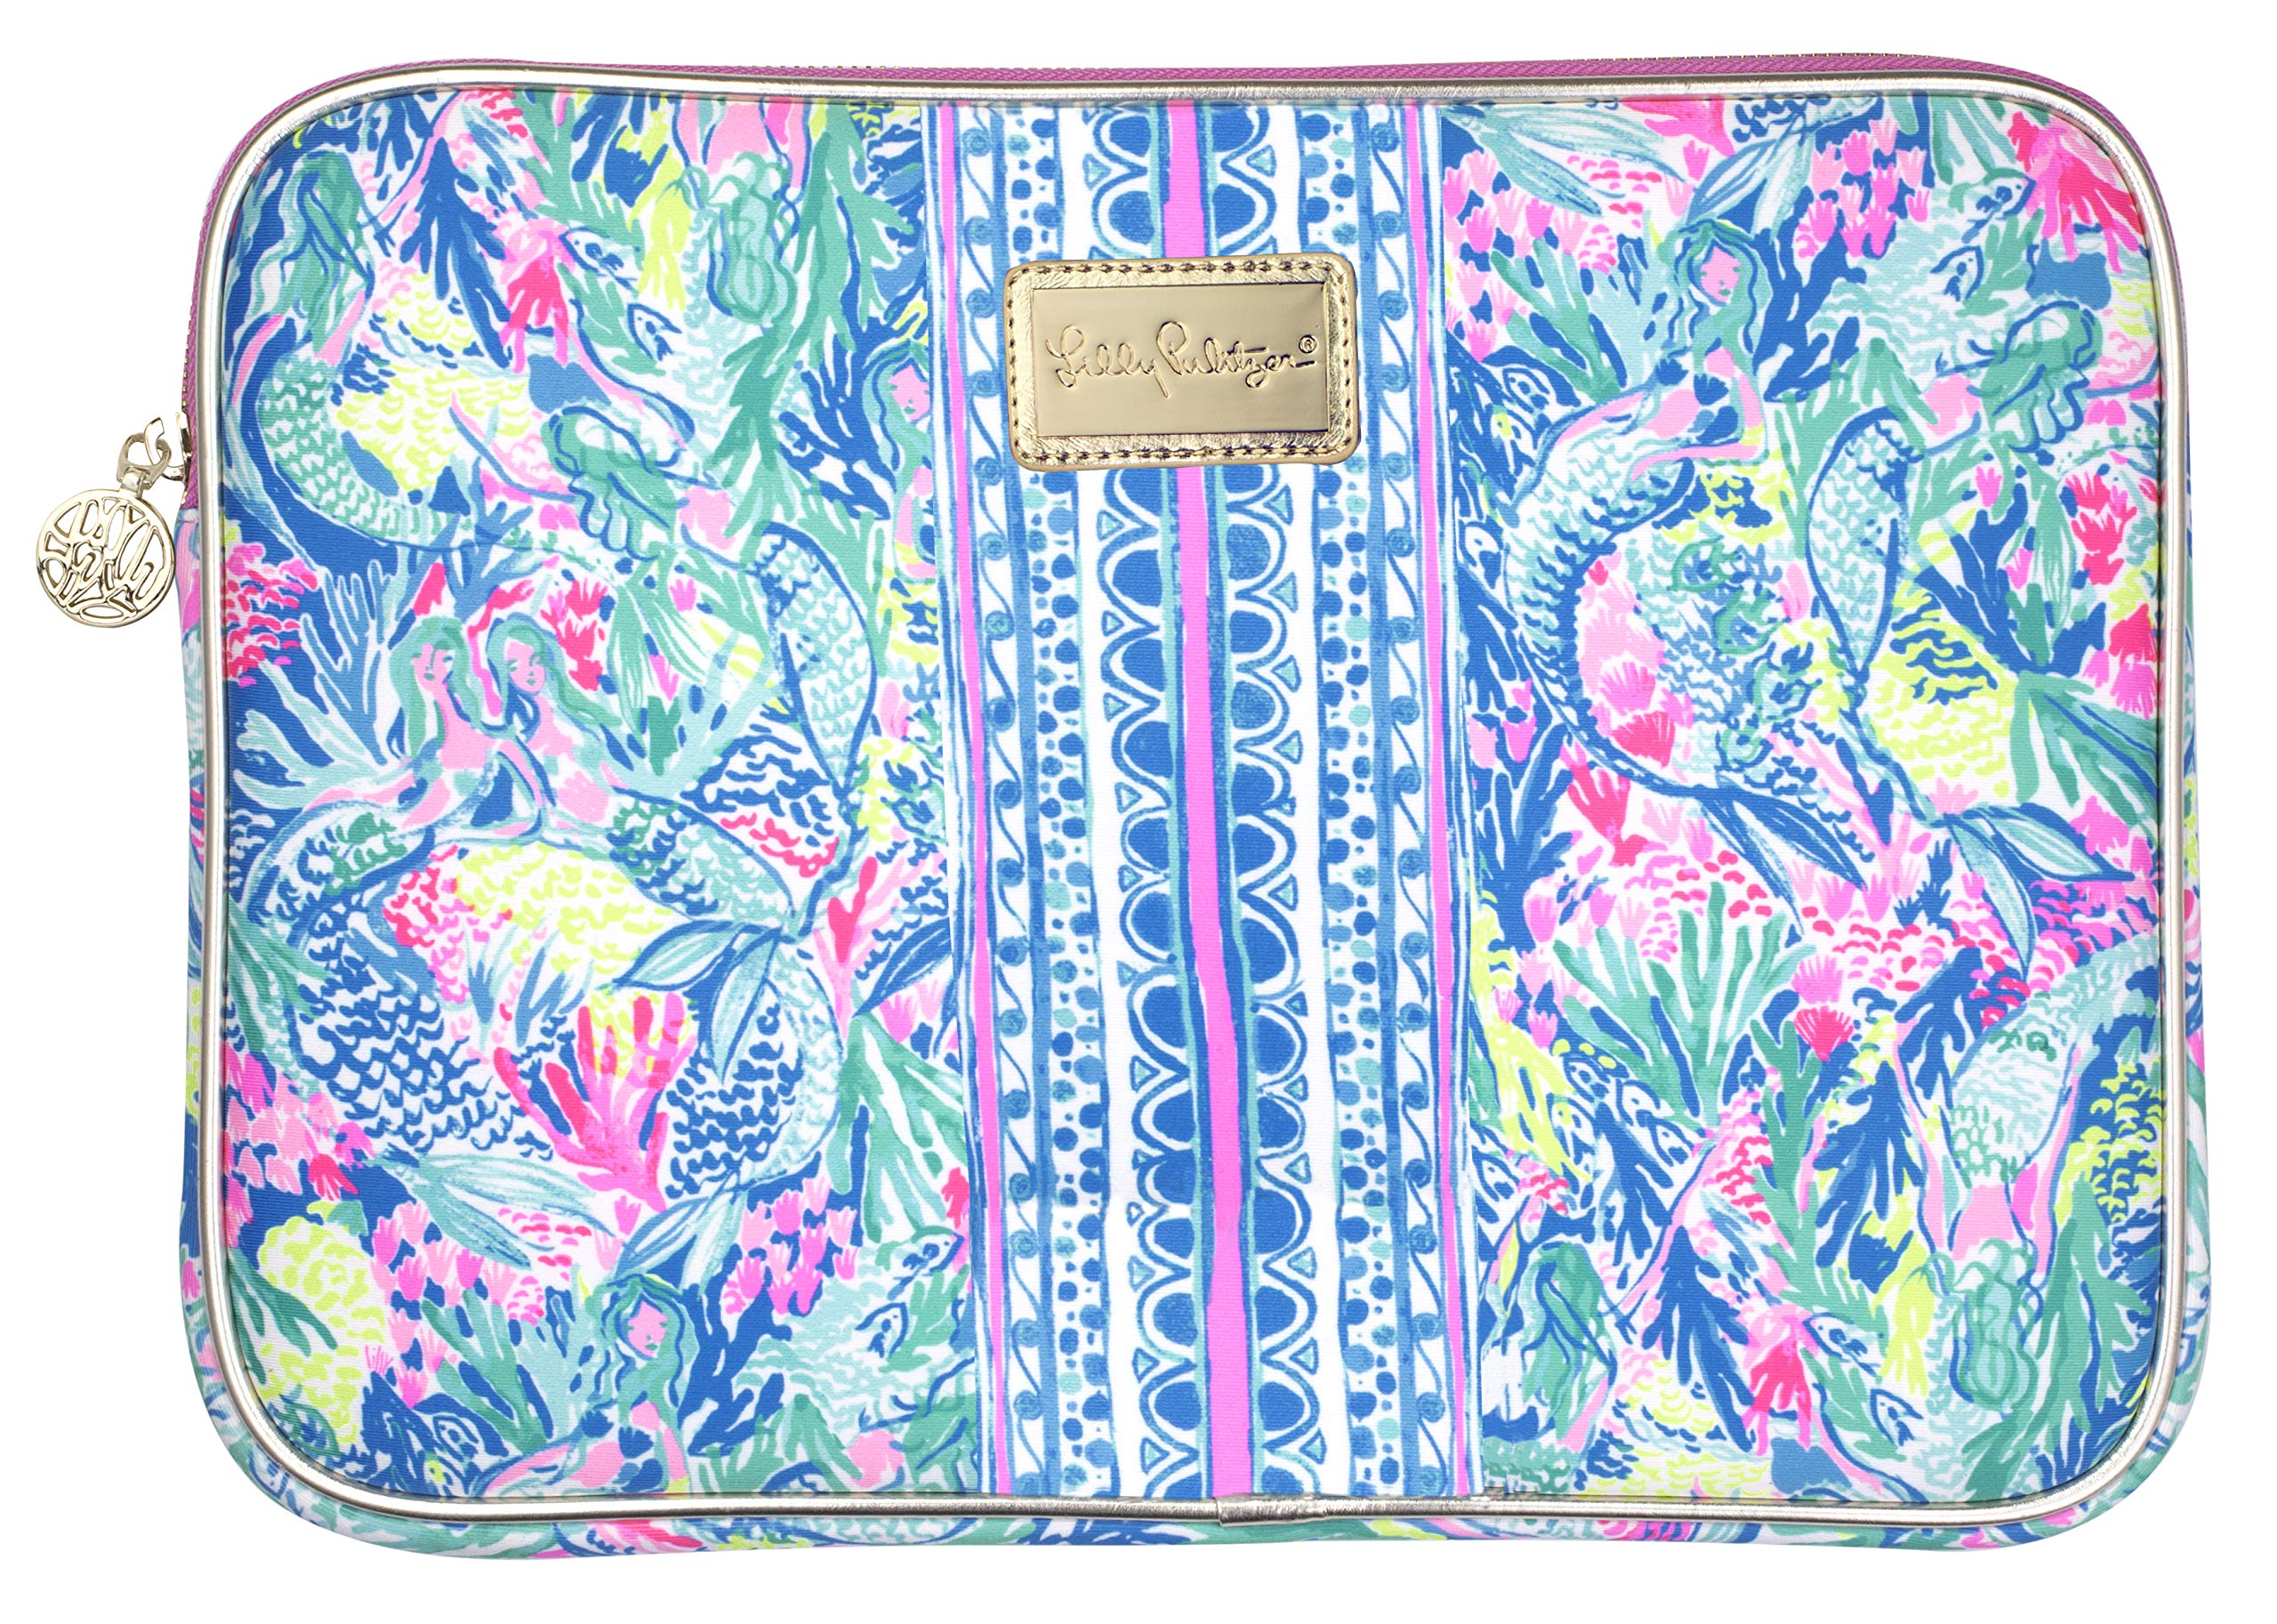 Lilly Pulitzer Tech Sleeve Fits up to 13 inch Laptop (Mermaid Cove) by Lilly Pulitzer